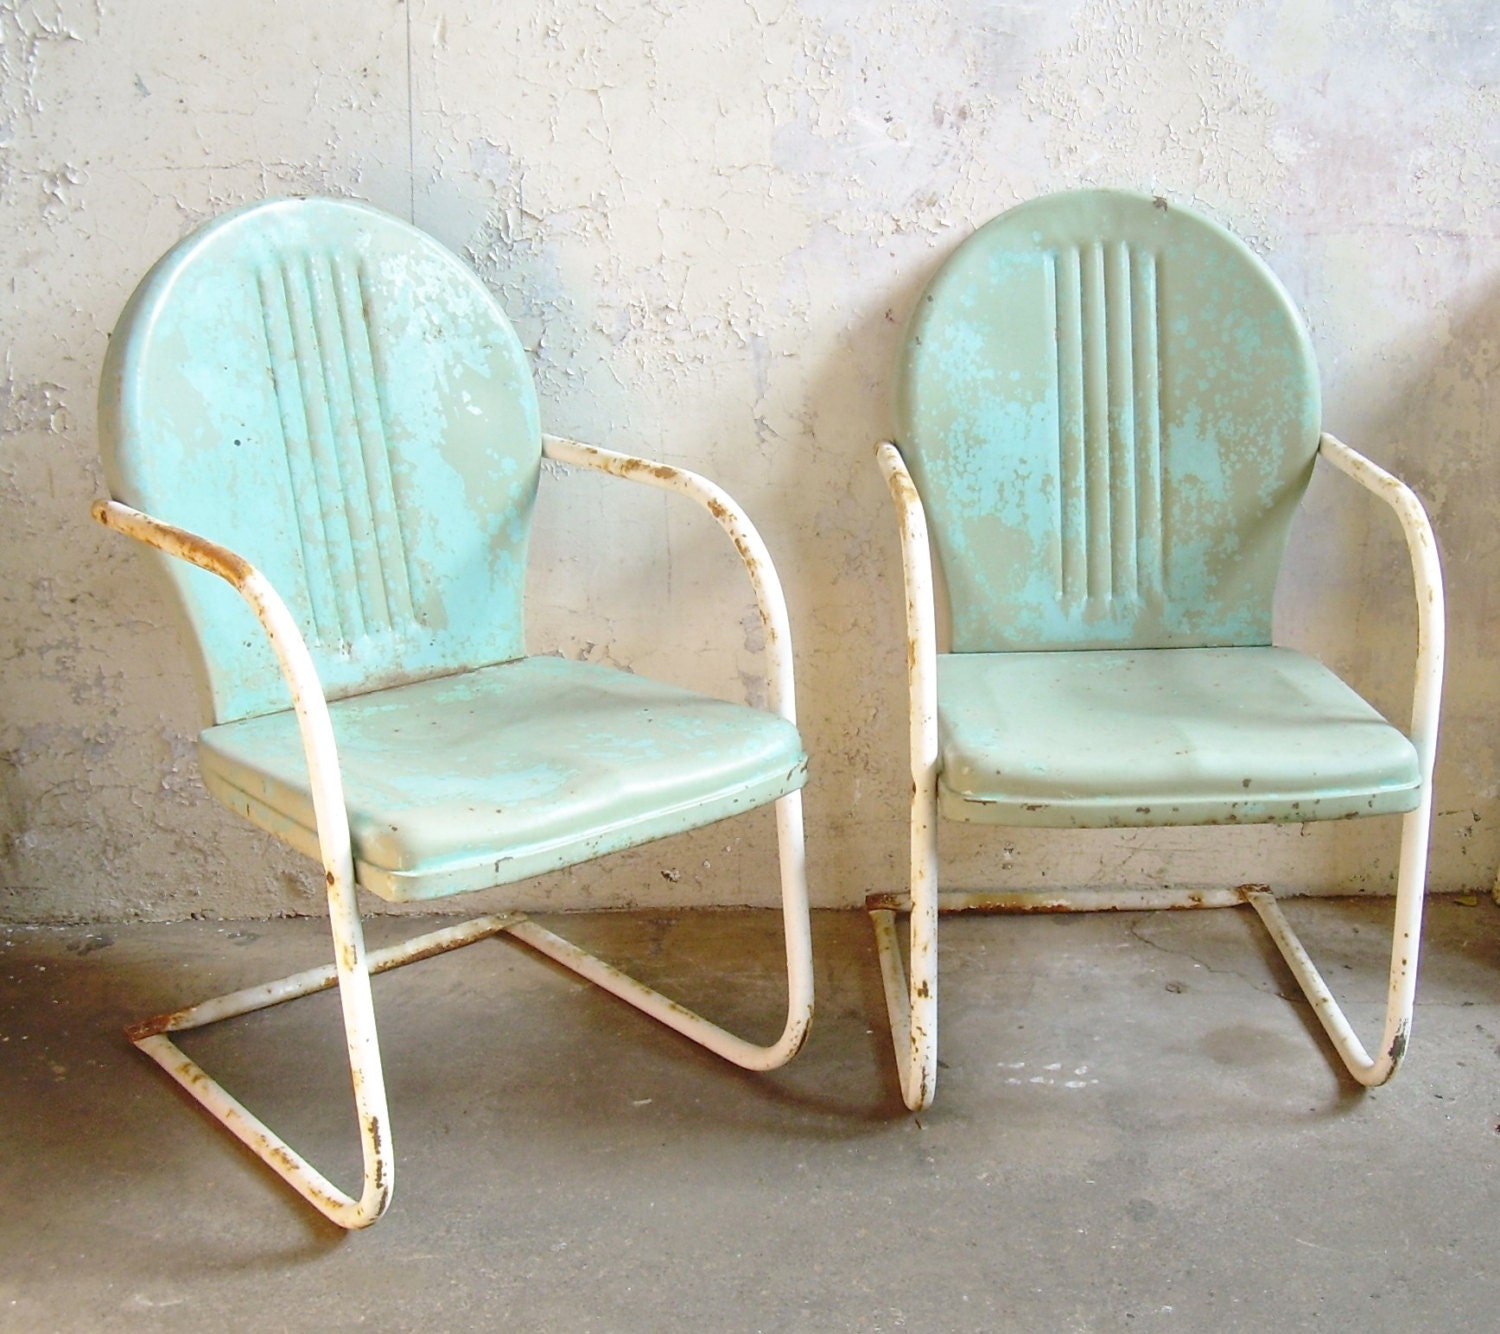 Retro metal lawn chairs pair rustic vintage porch furniture for Retro outdoor furniture